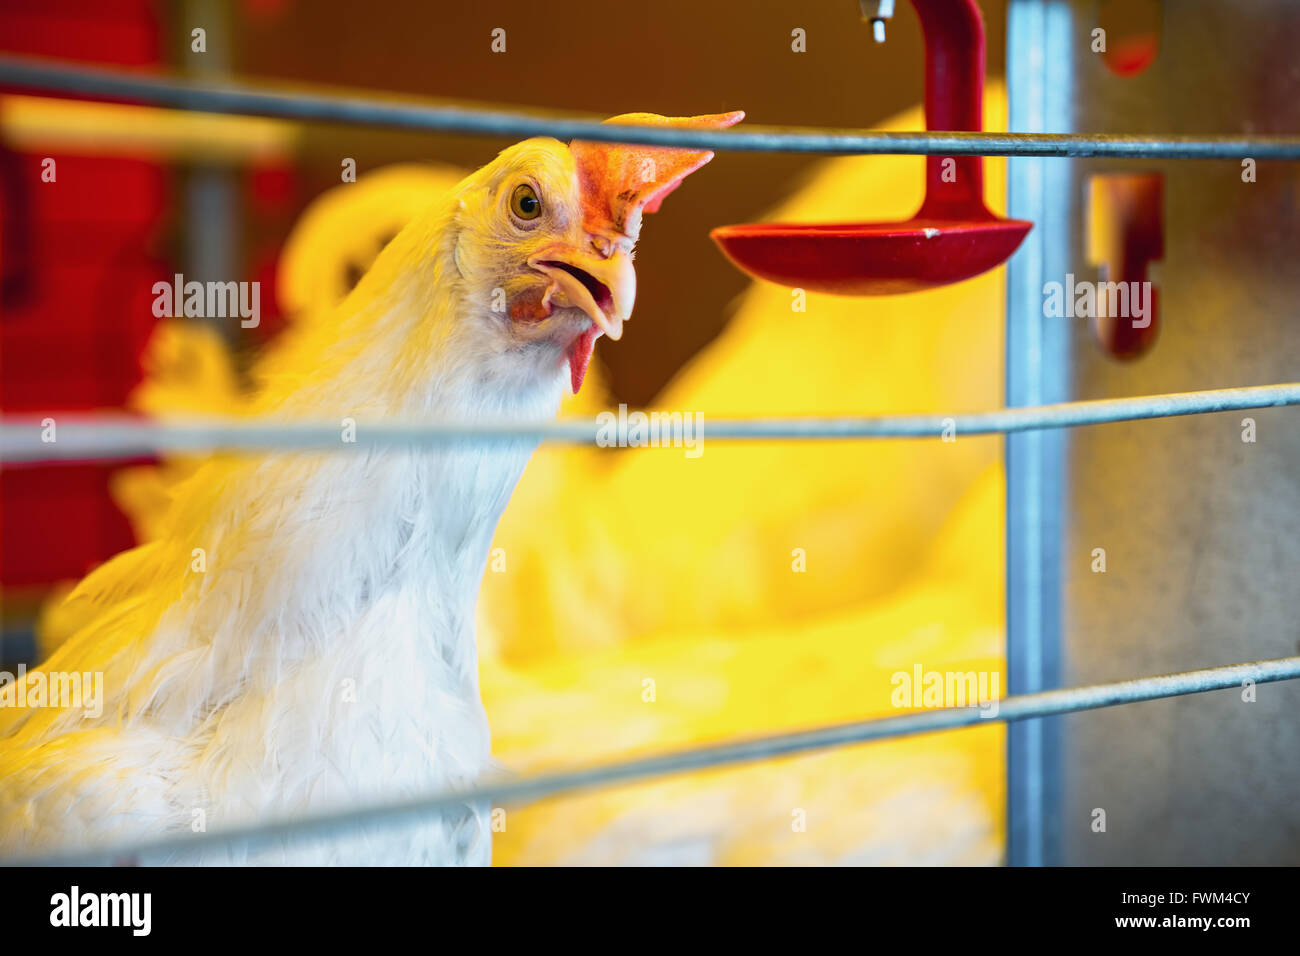 Close-Up Of Chicken Bird In Cage At Poultry Farm - Stock Image